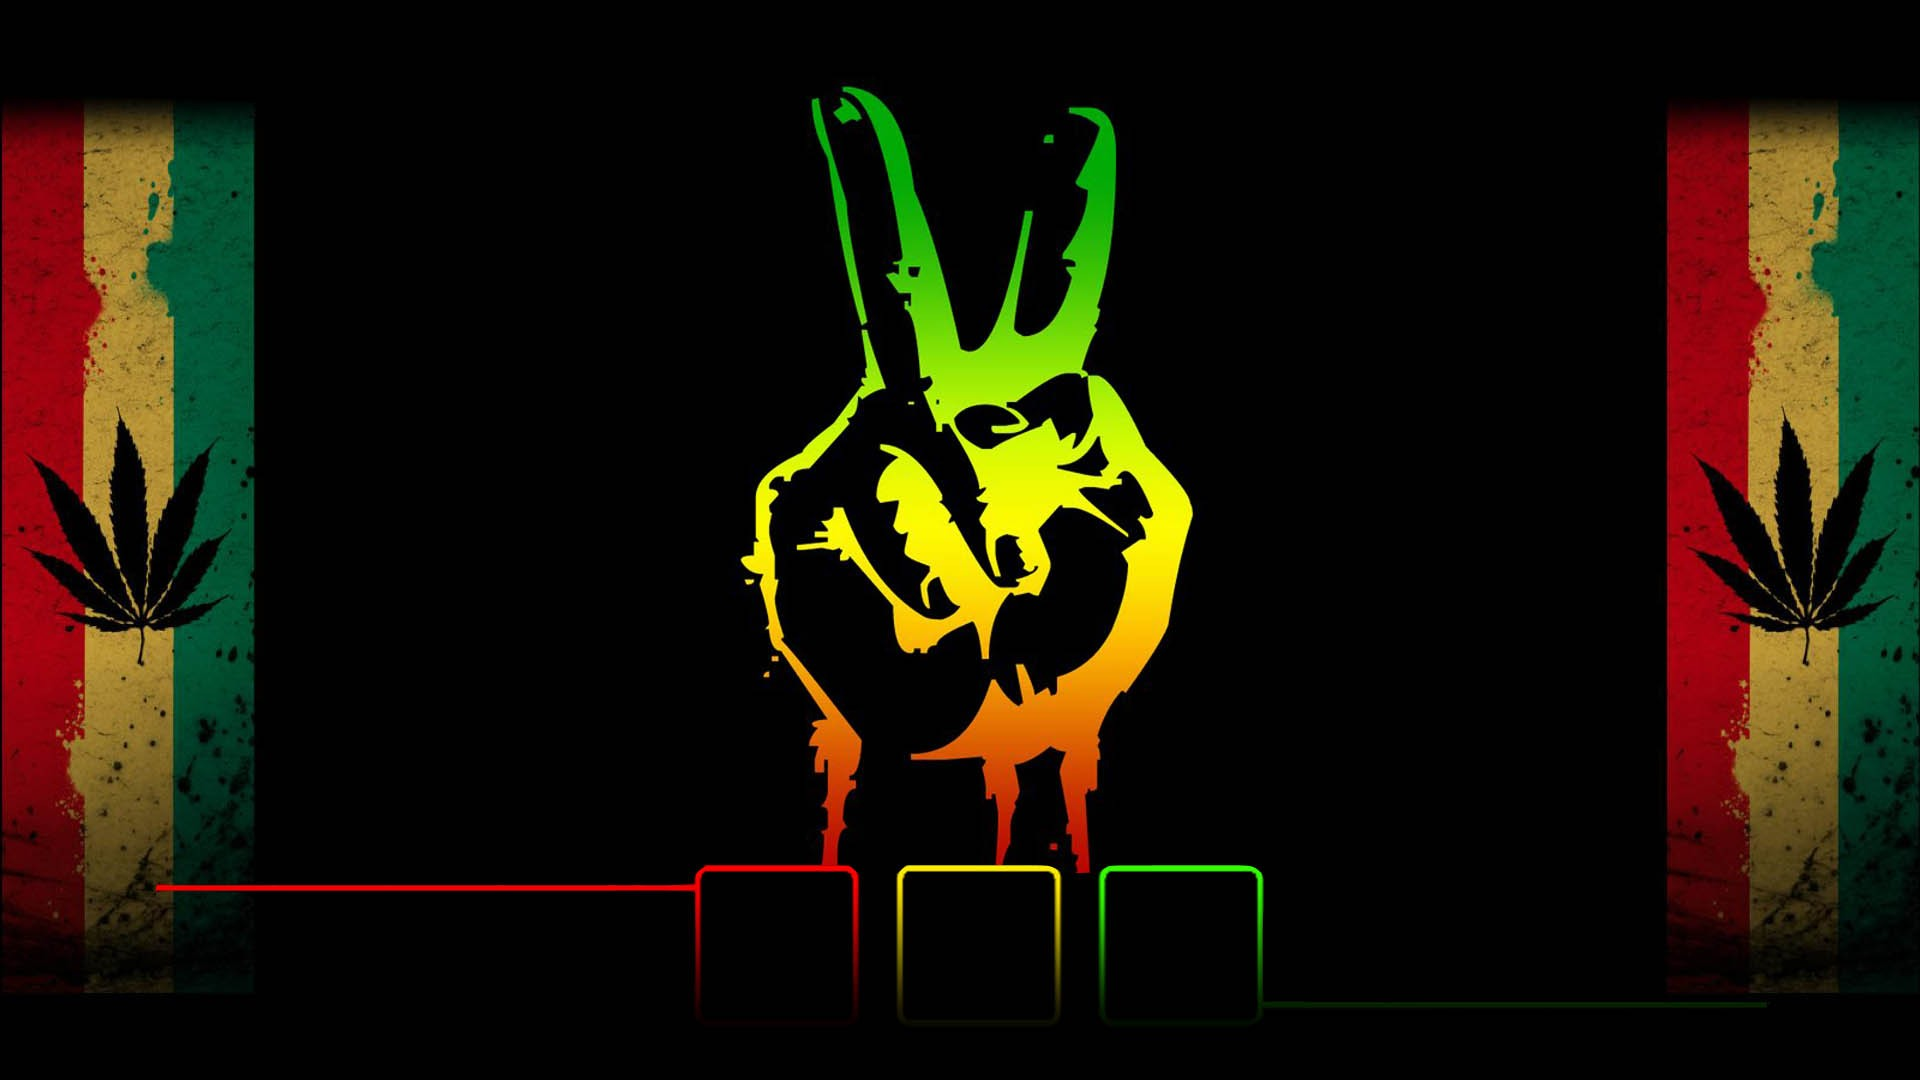 Rasta Peace Backgrounds HD wallpaper background 1920x1080